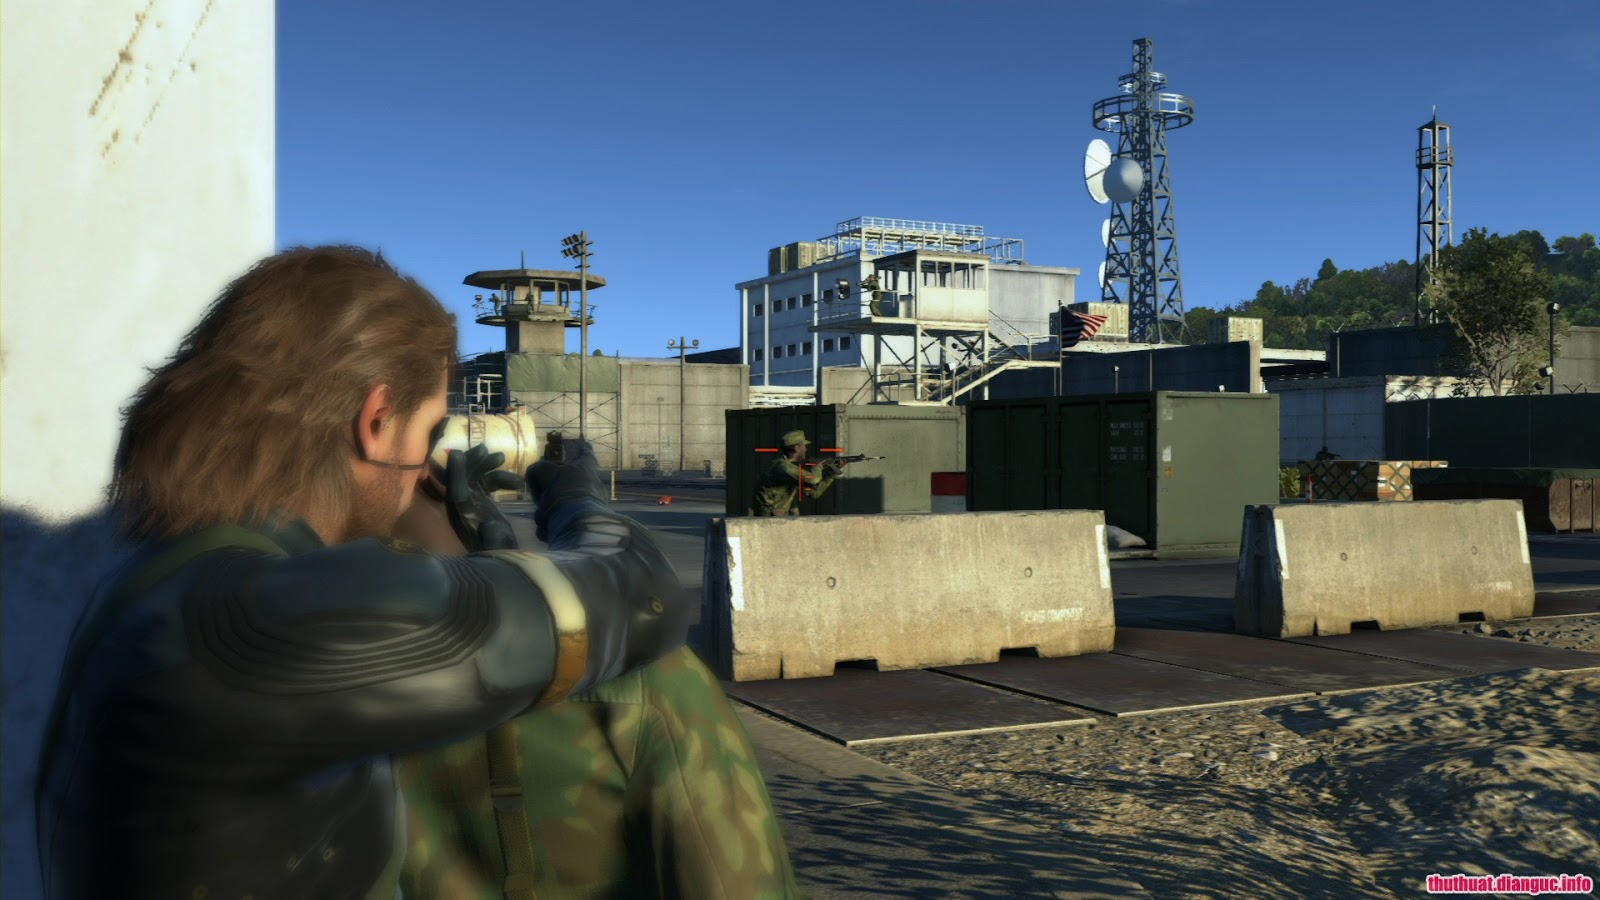 game Metal Gear Solid V: Ground Zeroes full crack, Metal Gear Solid V: Ground Zeroes,